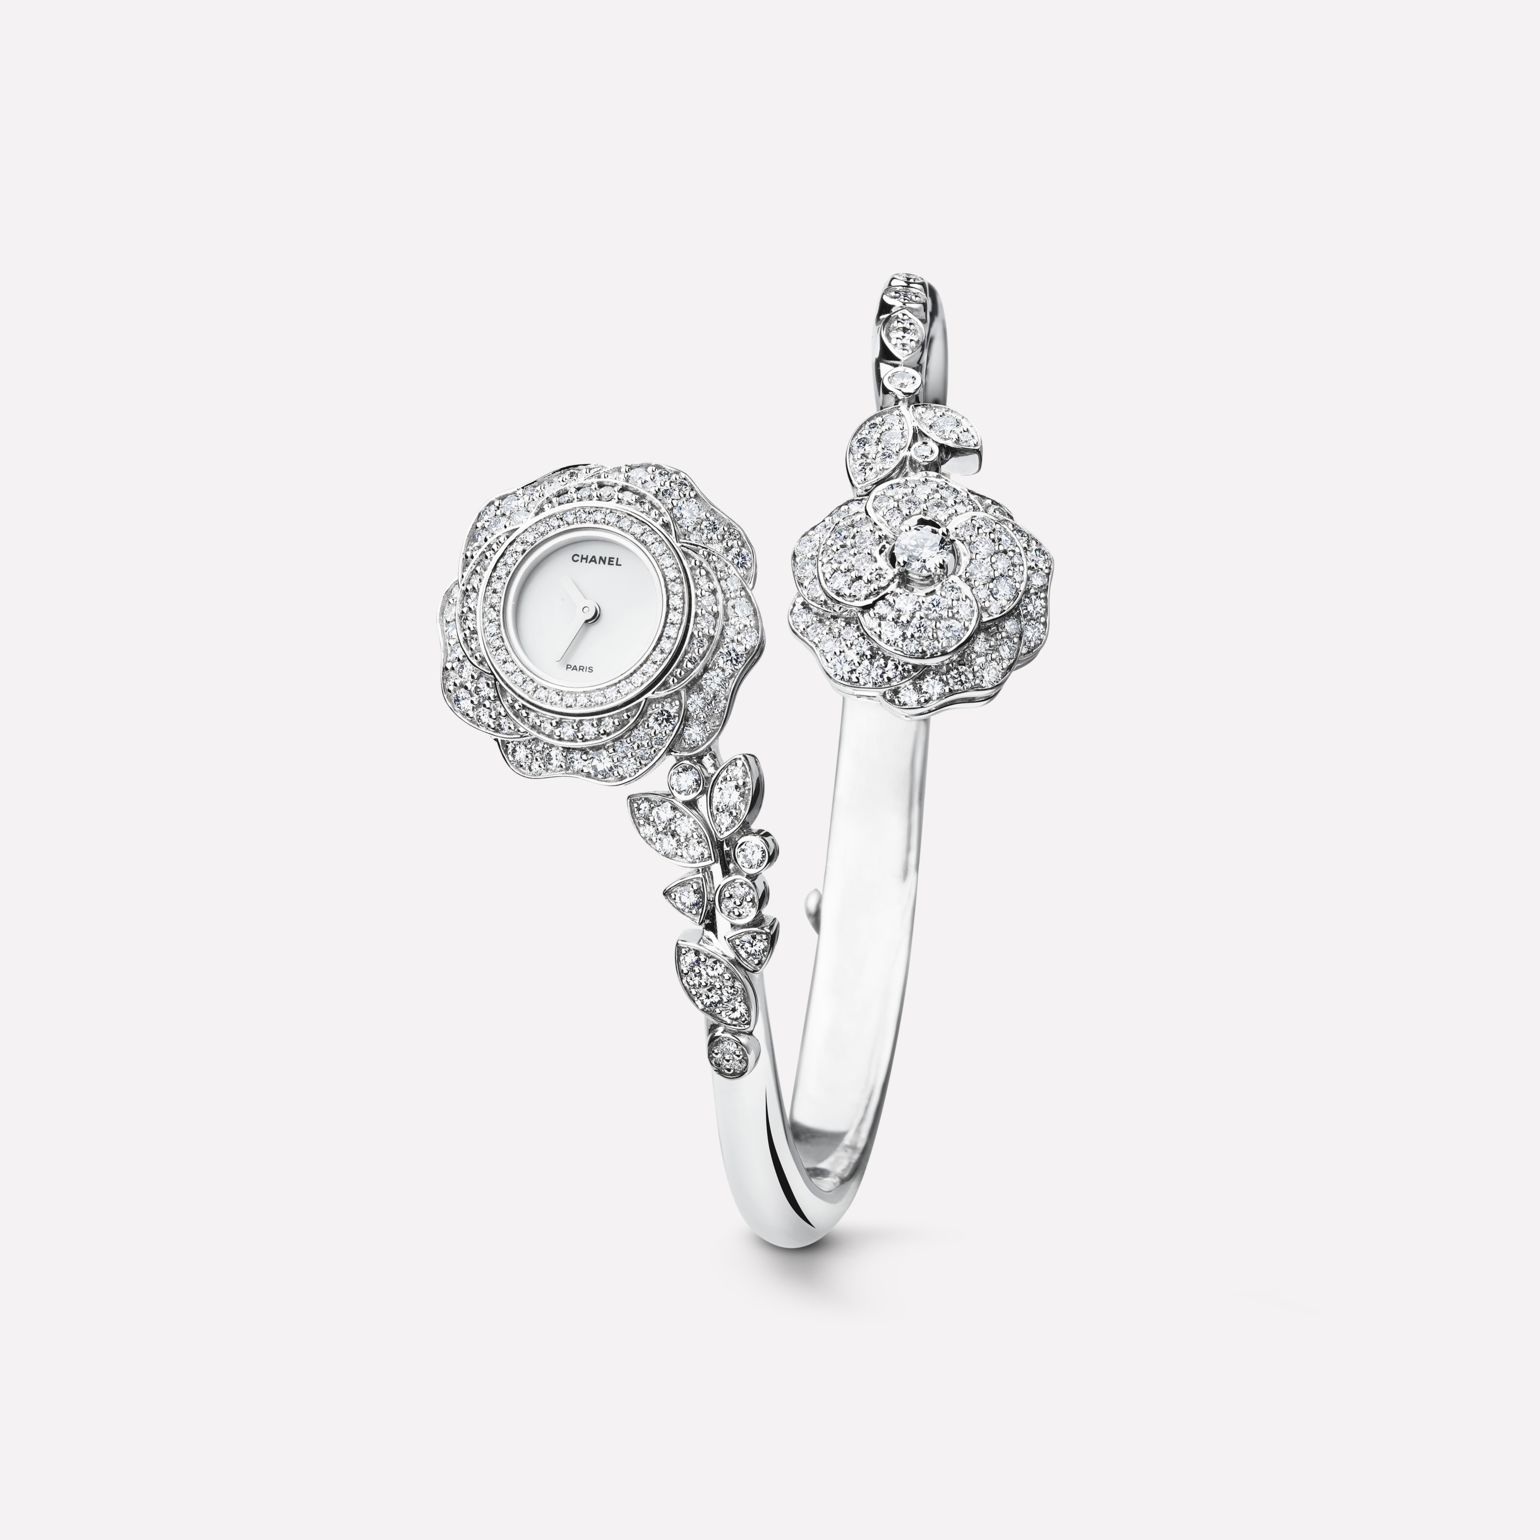 Camélia Jewellery Watch Camellia bud motif in 18K white gold and diamonds